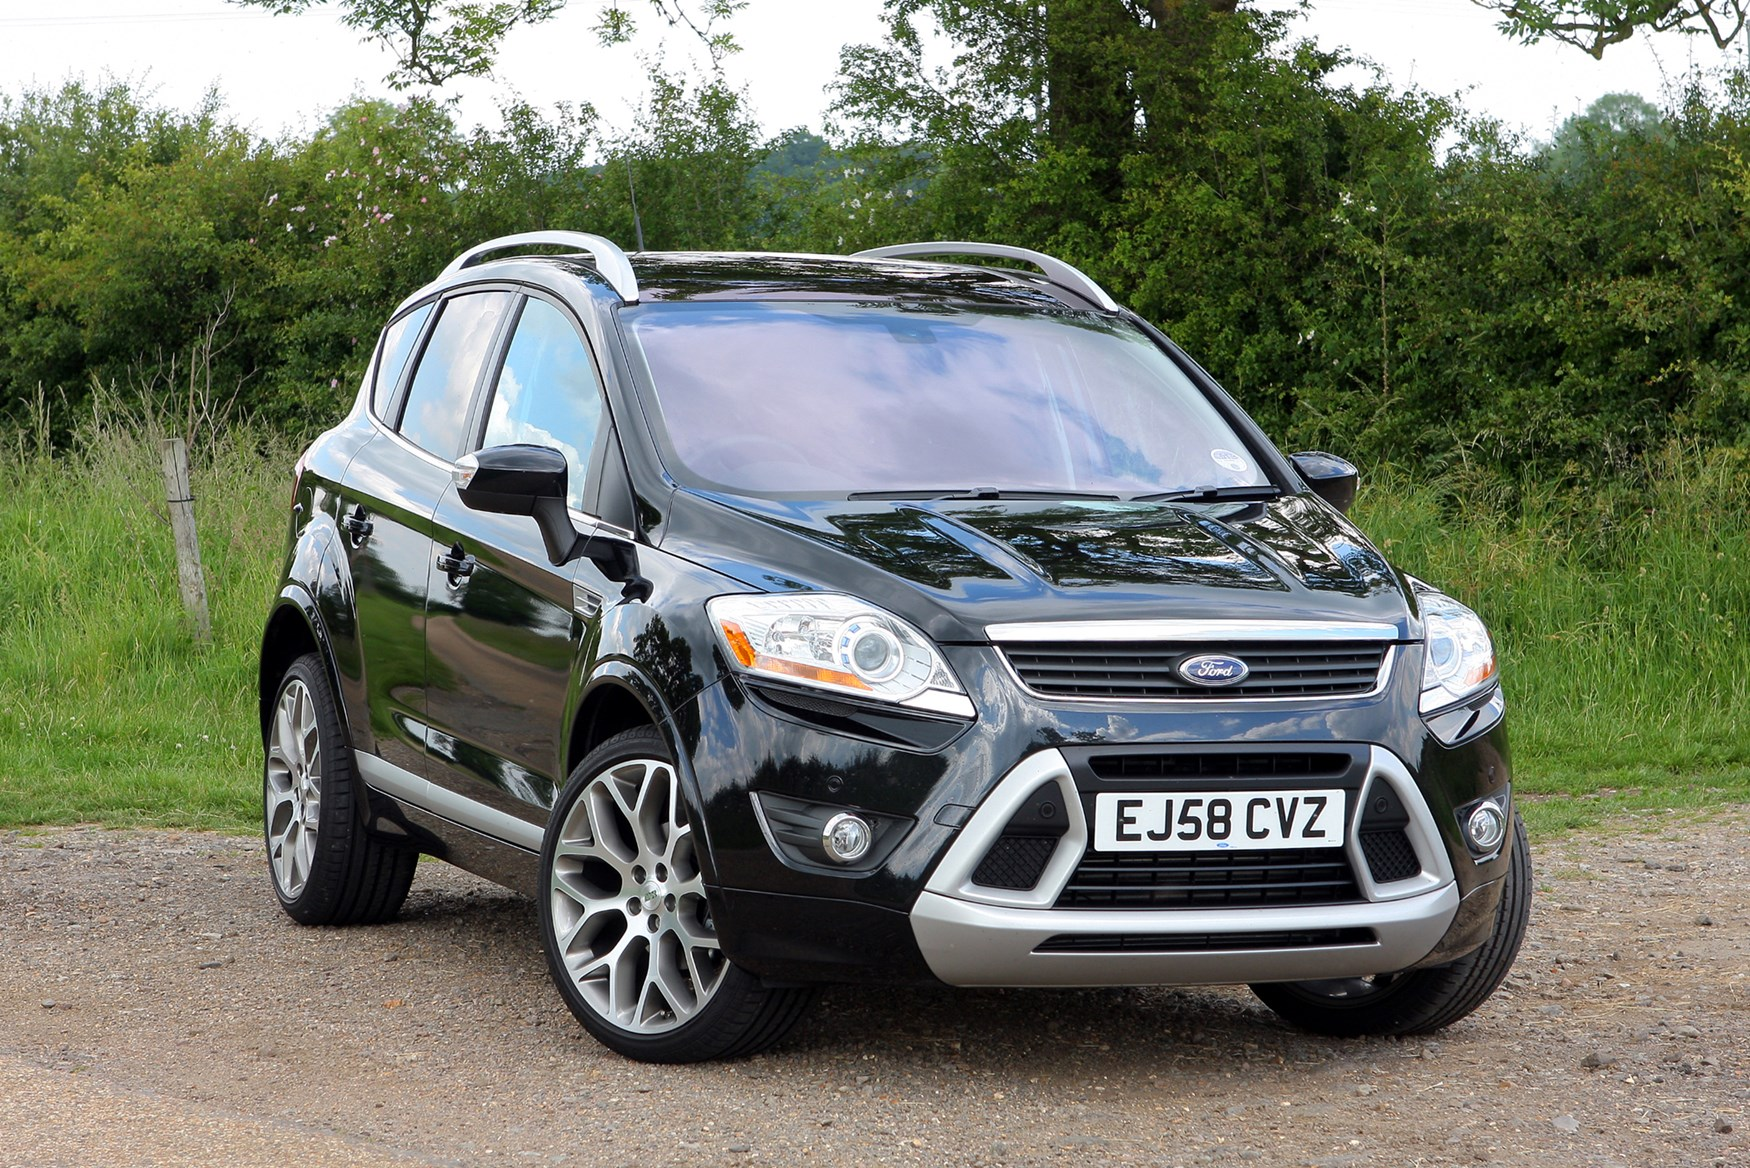 Ford Kuga I 2008 - 2012 SUV 5 door #4